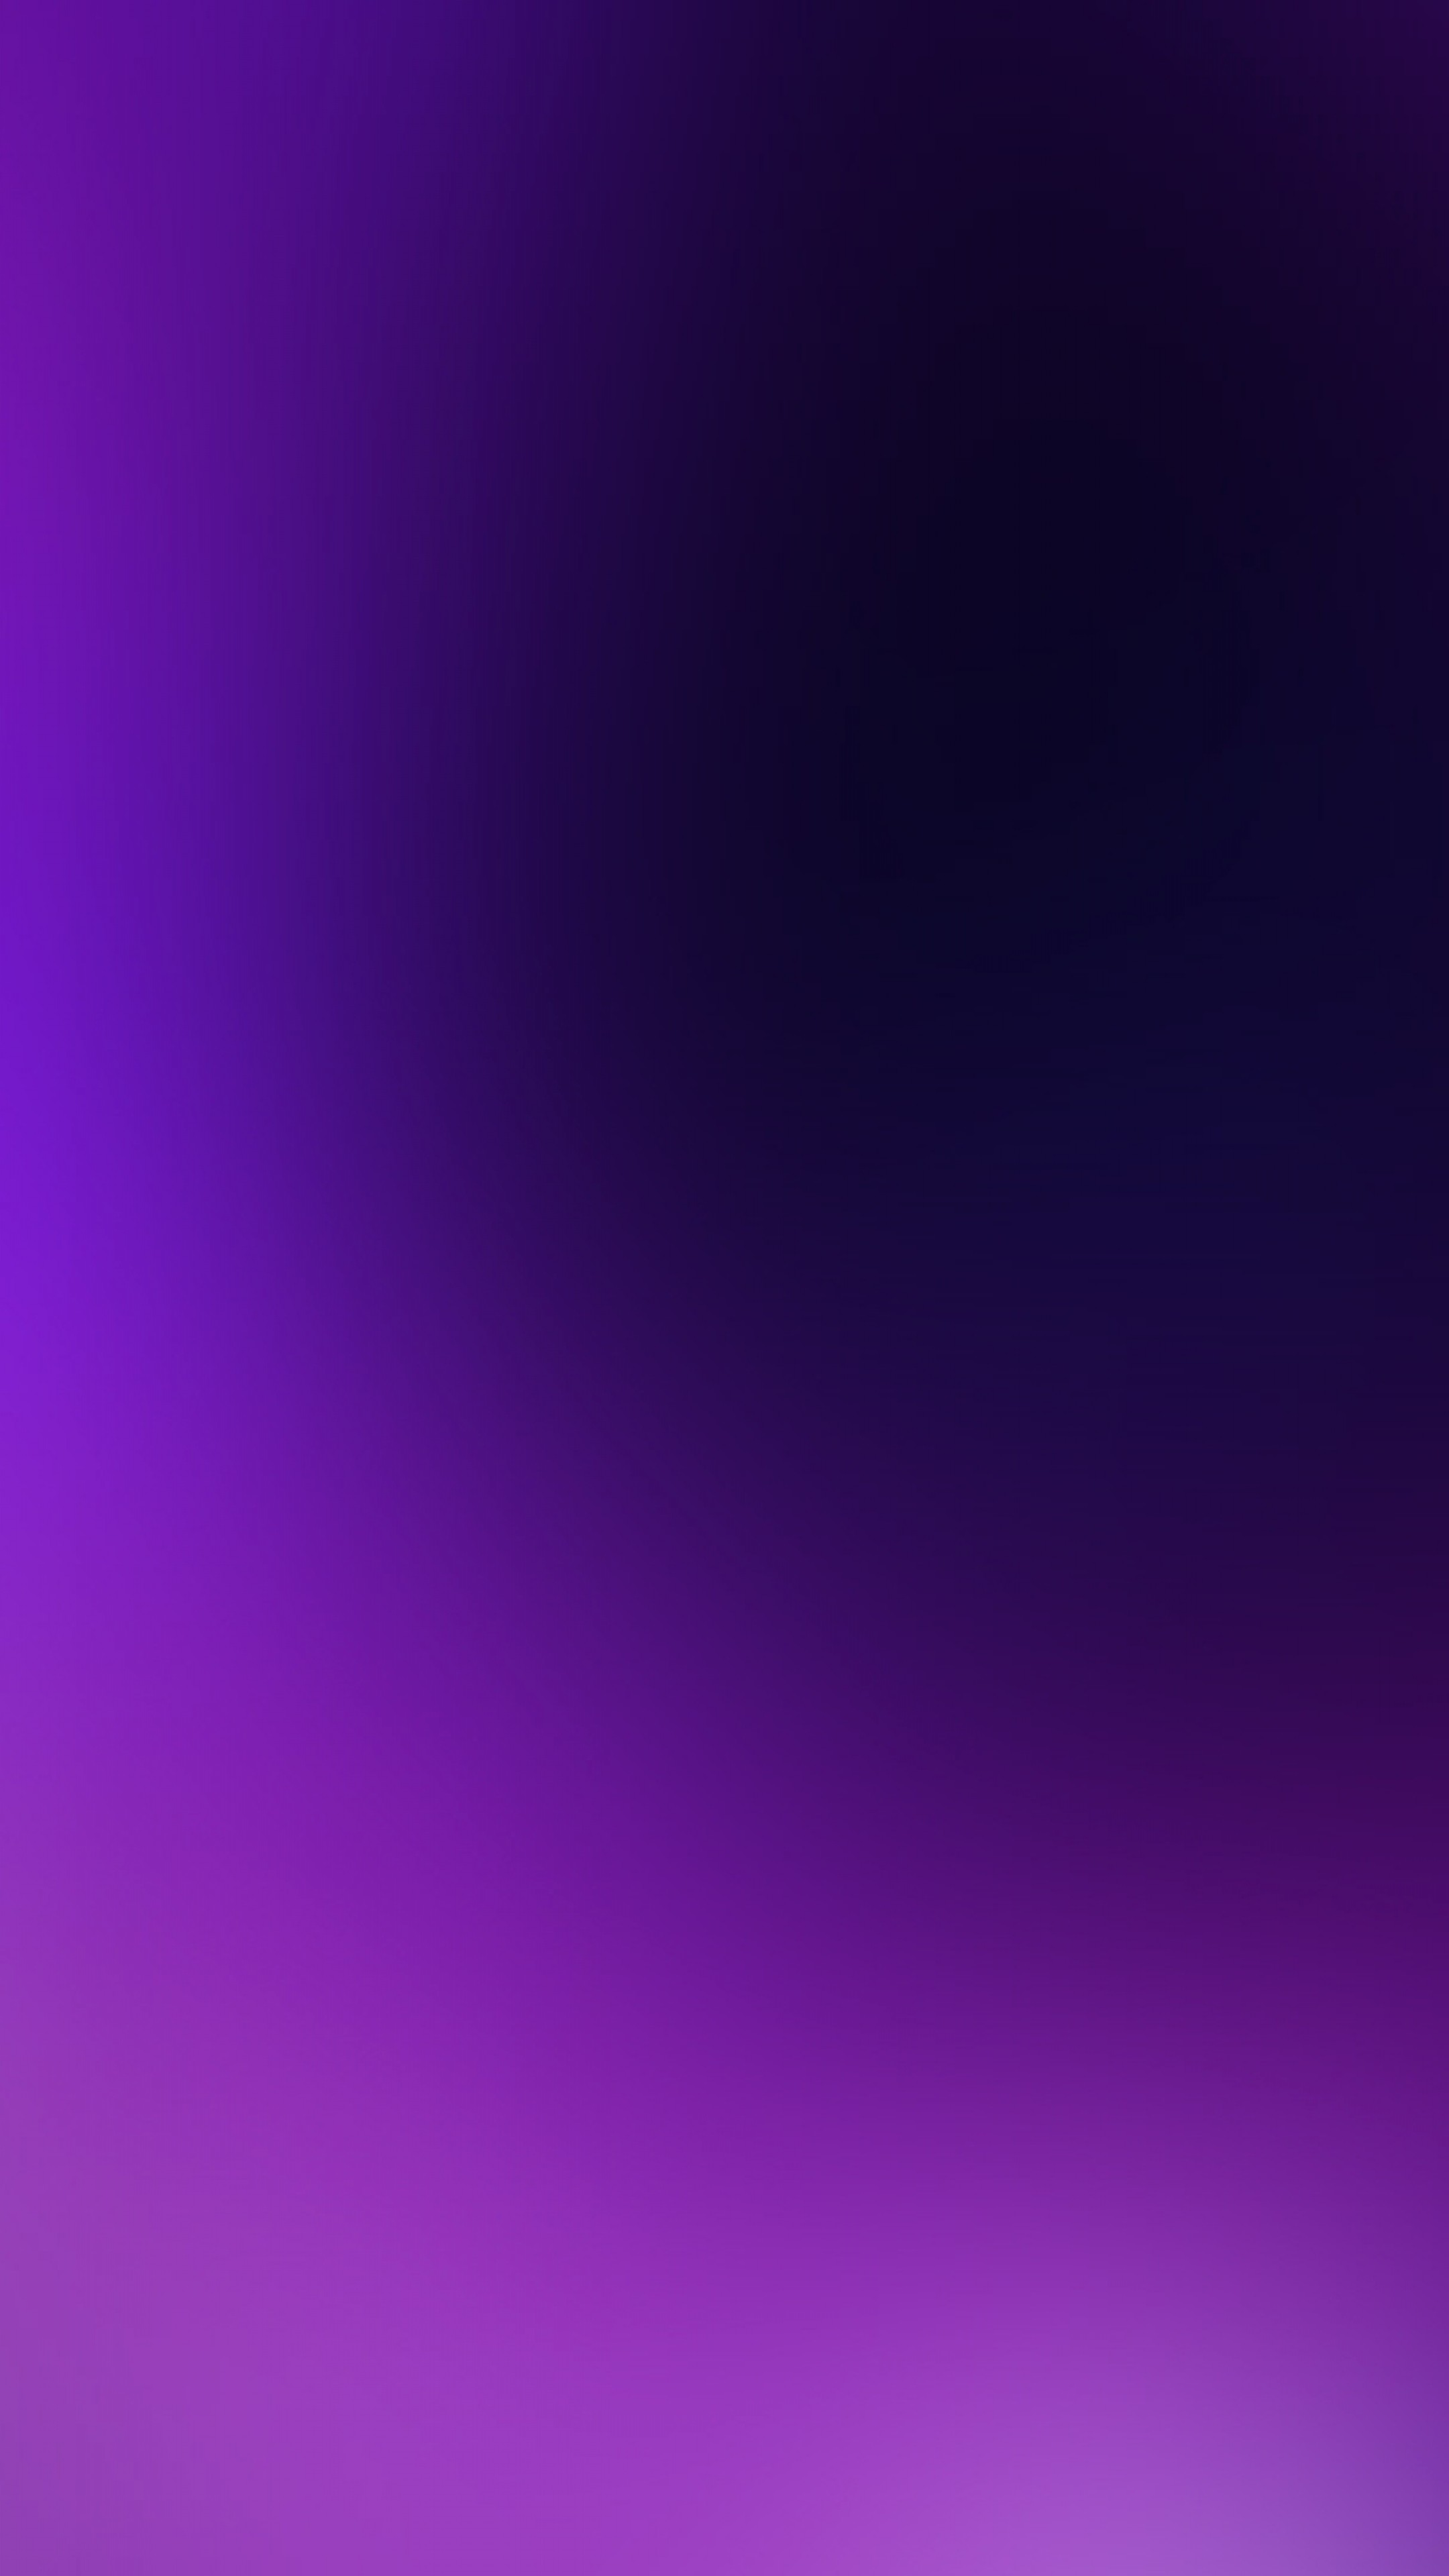 Wallpaper purple, white, background, stains, abstract